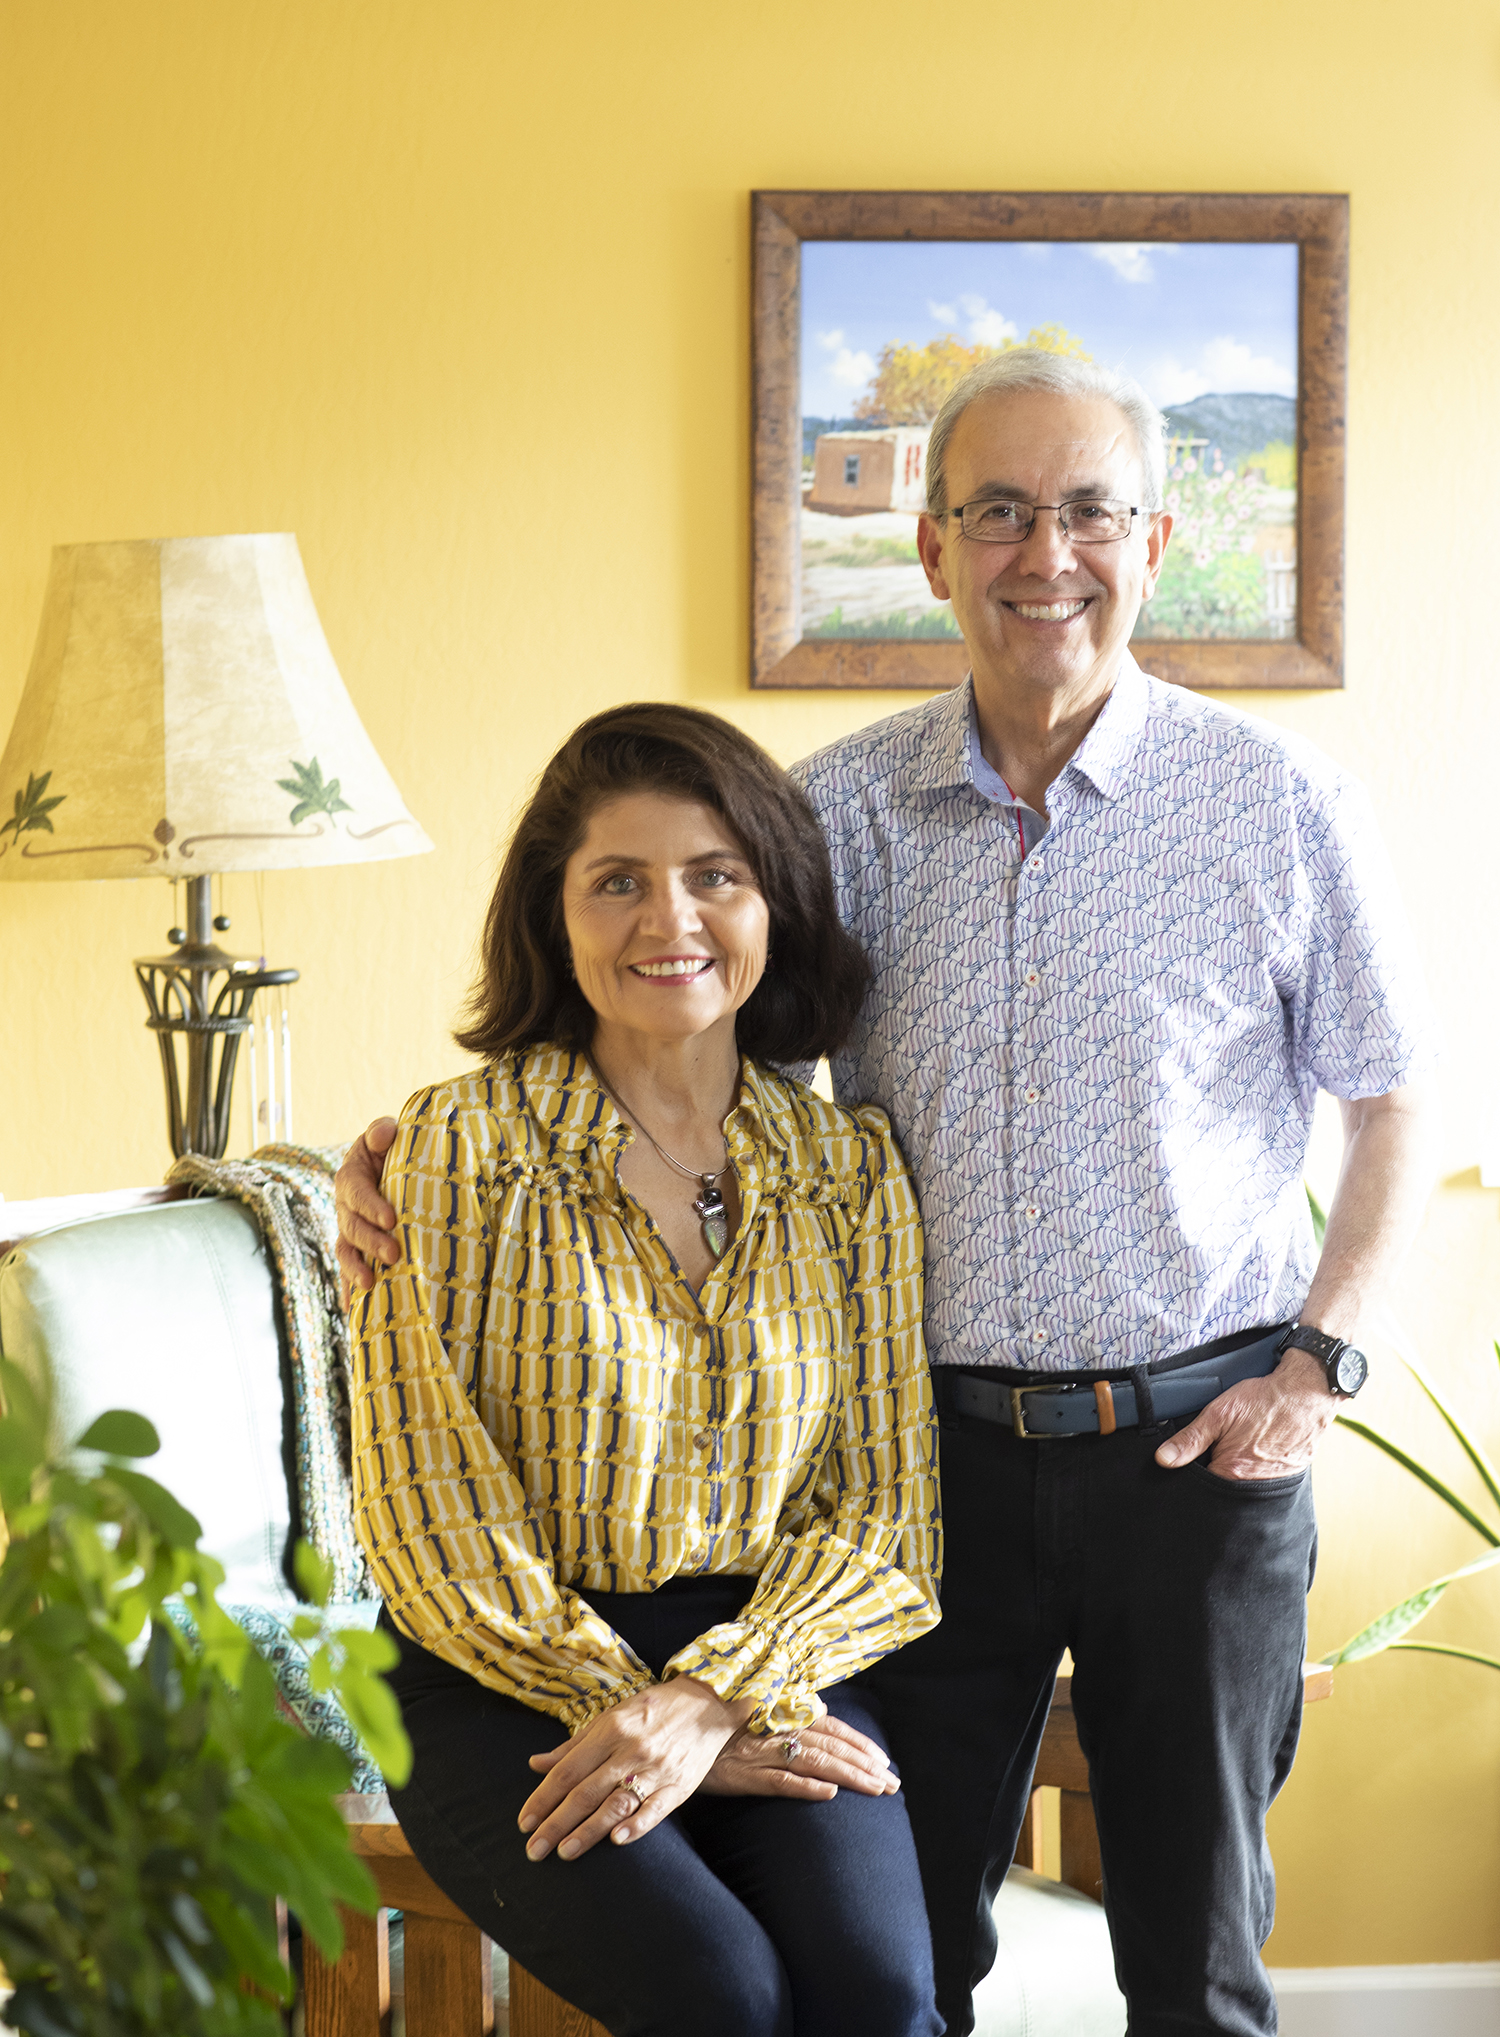 Interview with Luis and Nancy Herrera